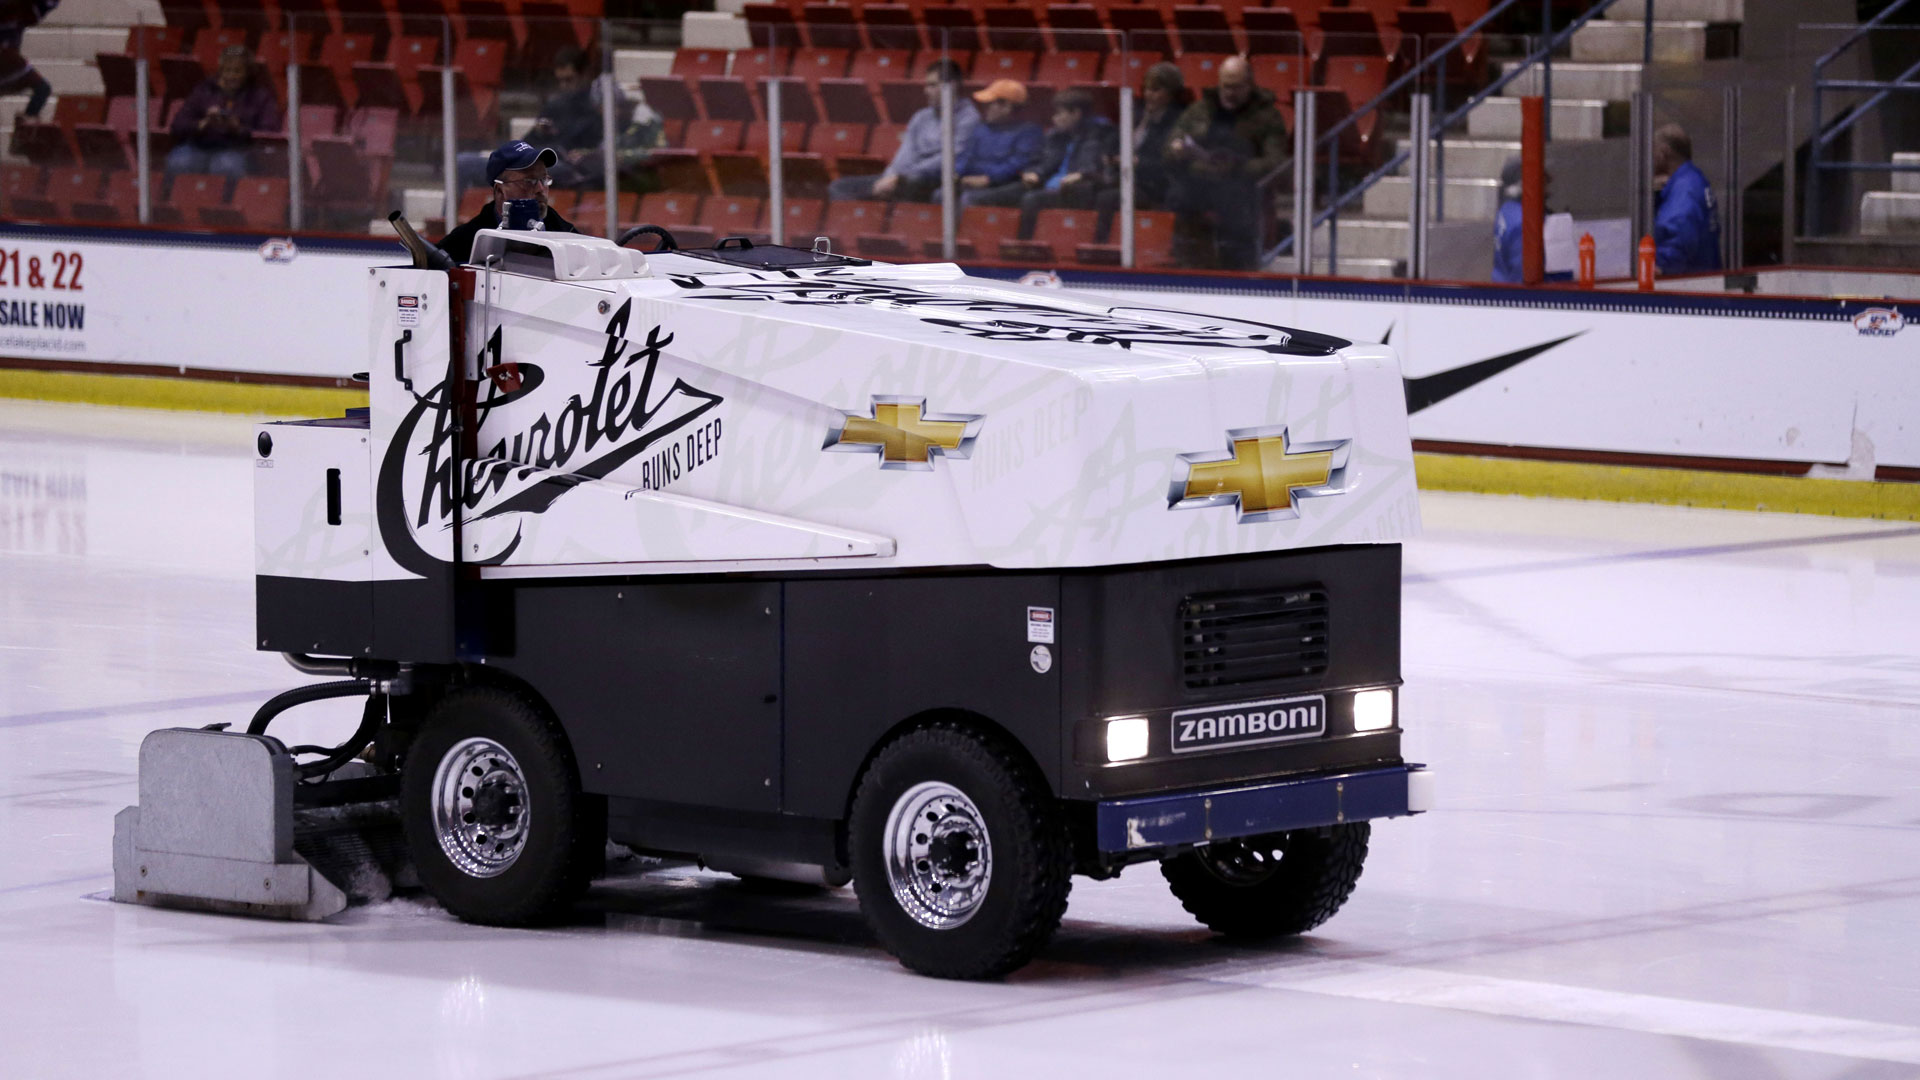 Zamboni driver arrested on dui charges nhl sporting news for Home zamboni